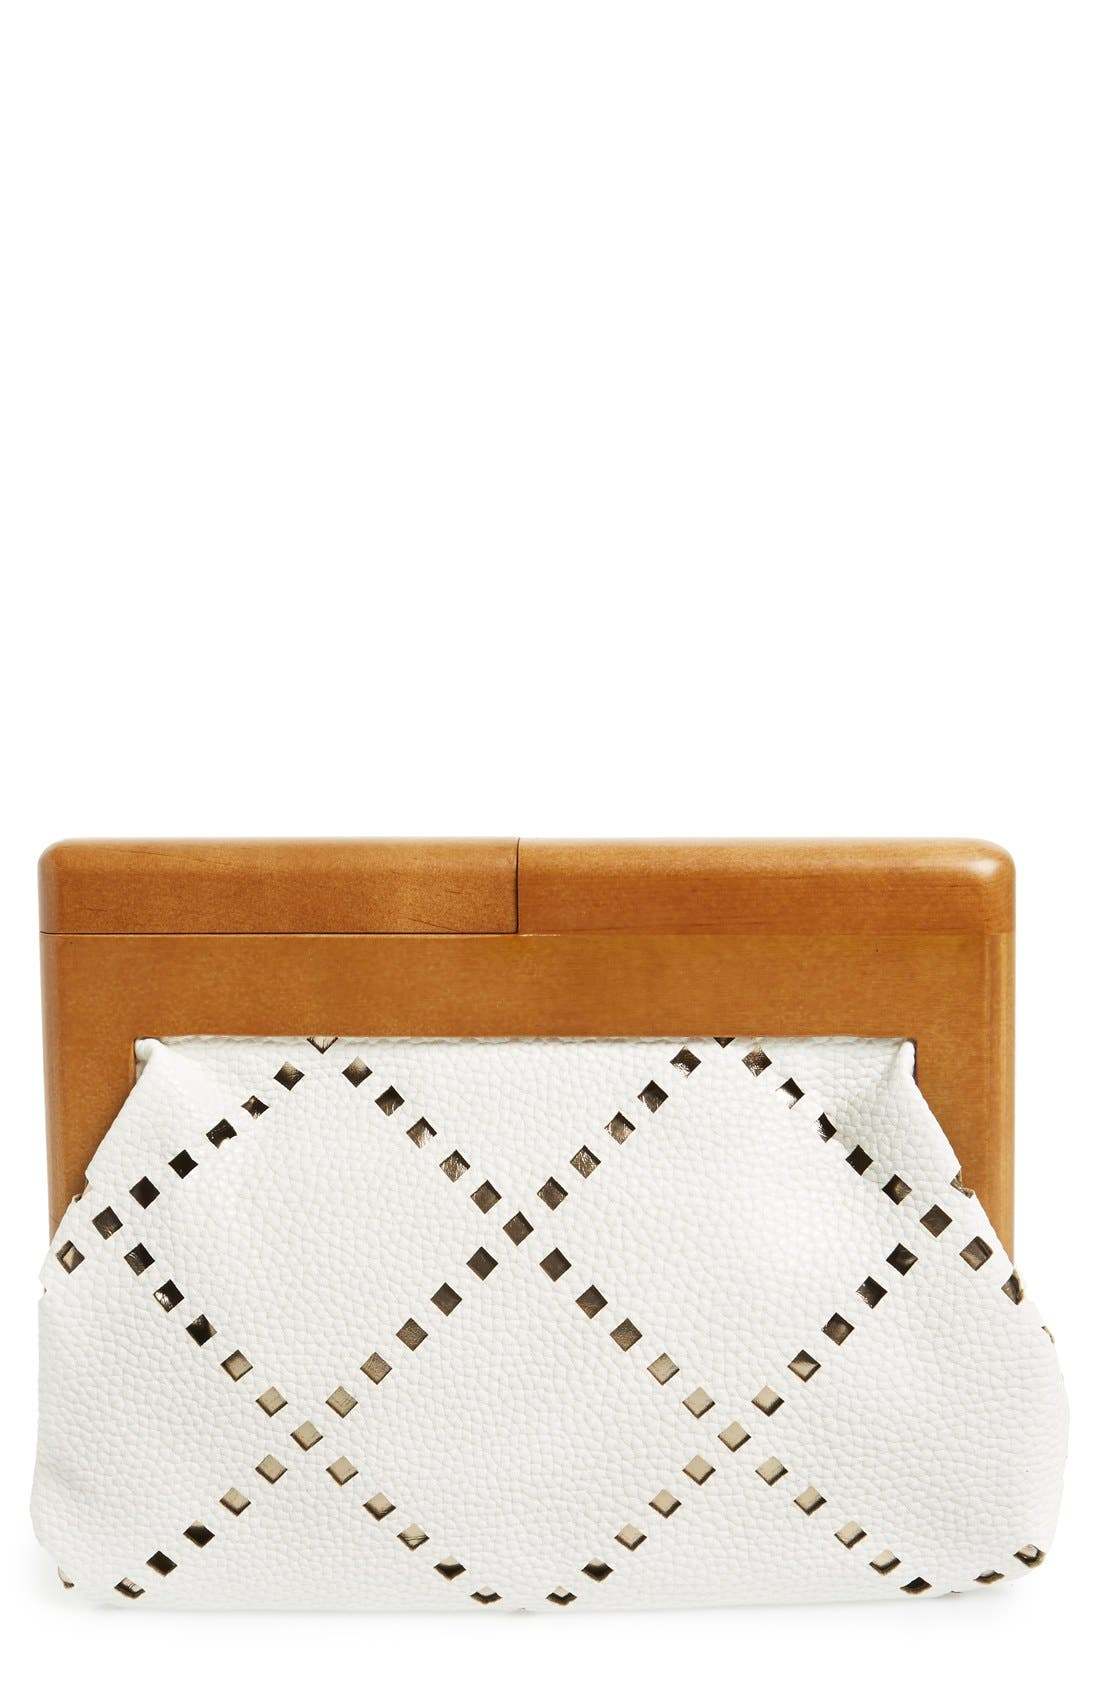 Perforated Faux Leather Frame Clutch,                             Main thumbnail 1, color,                             100